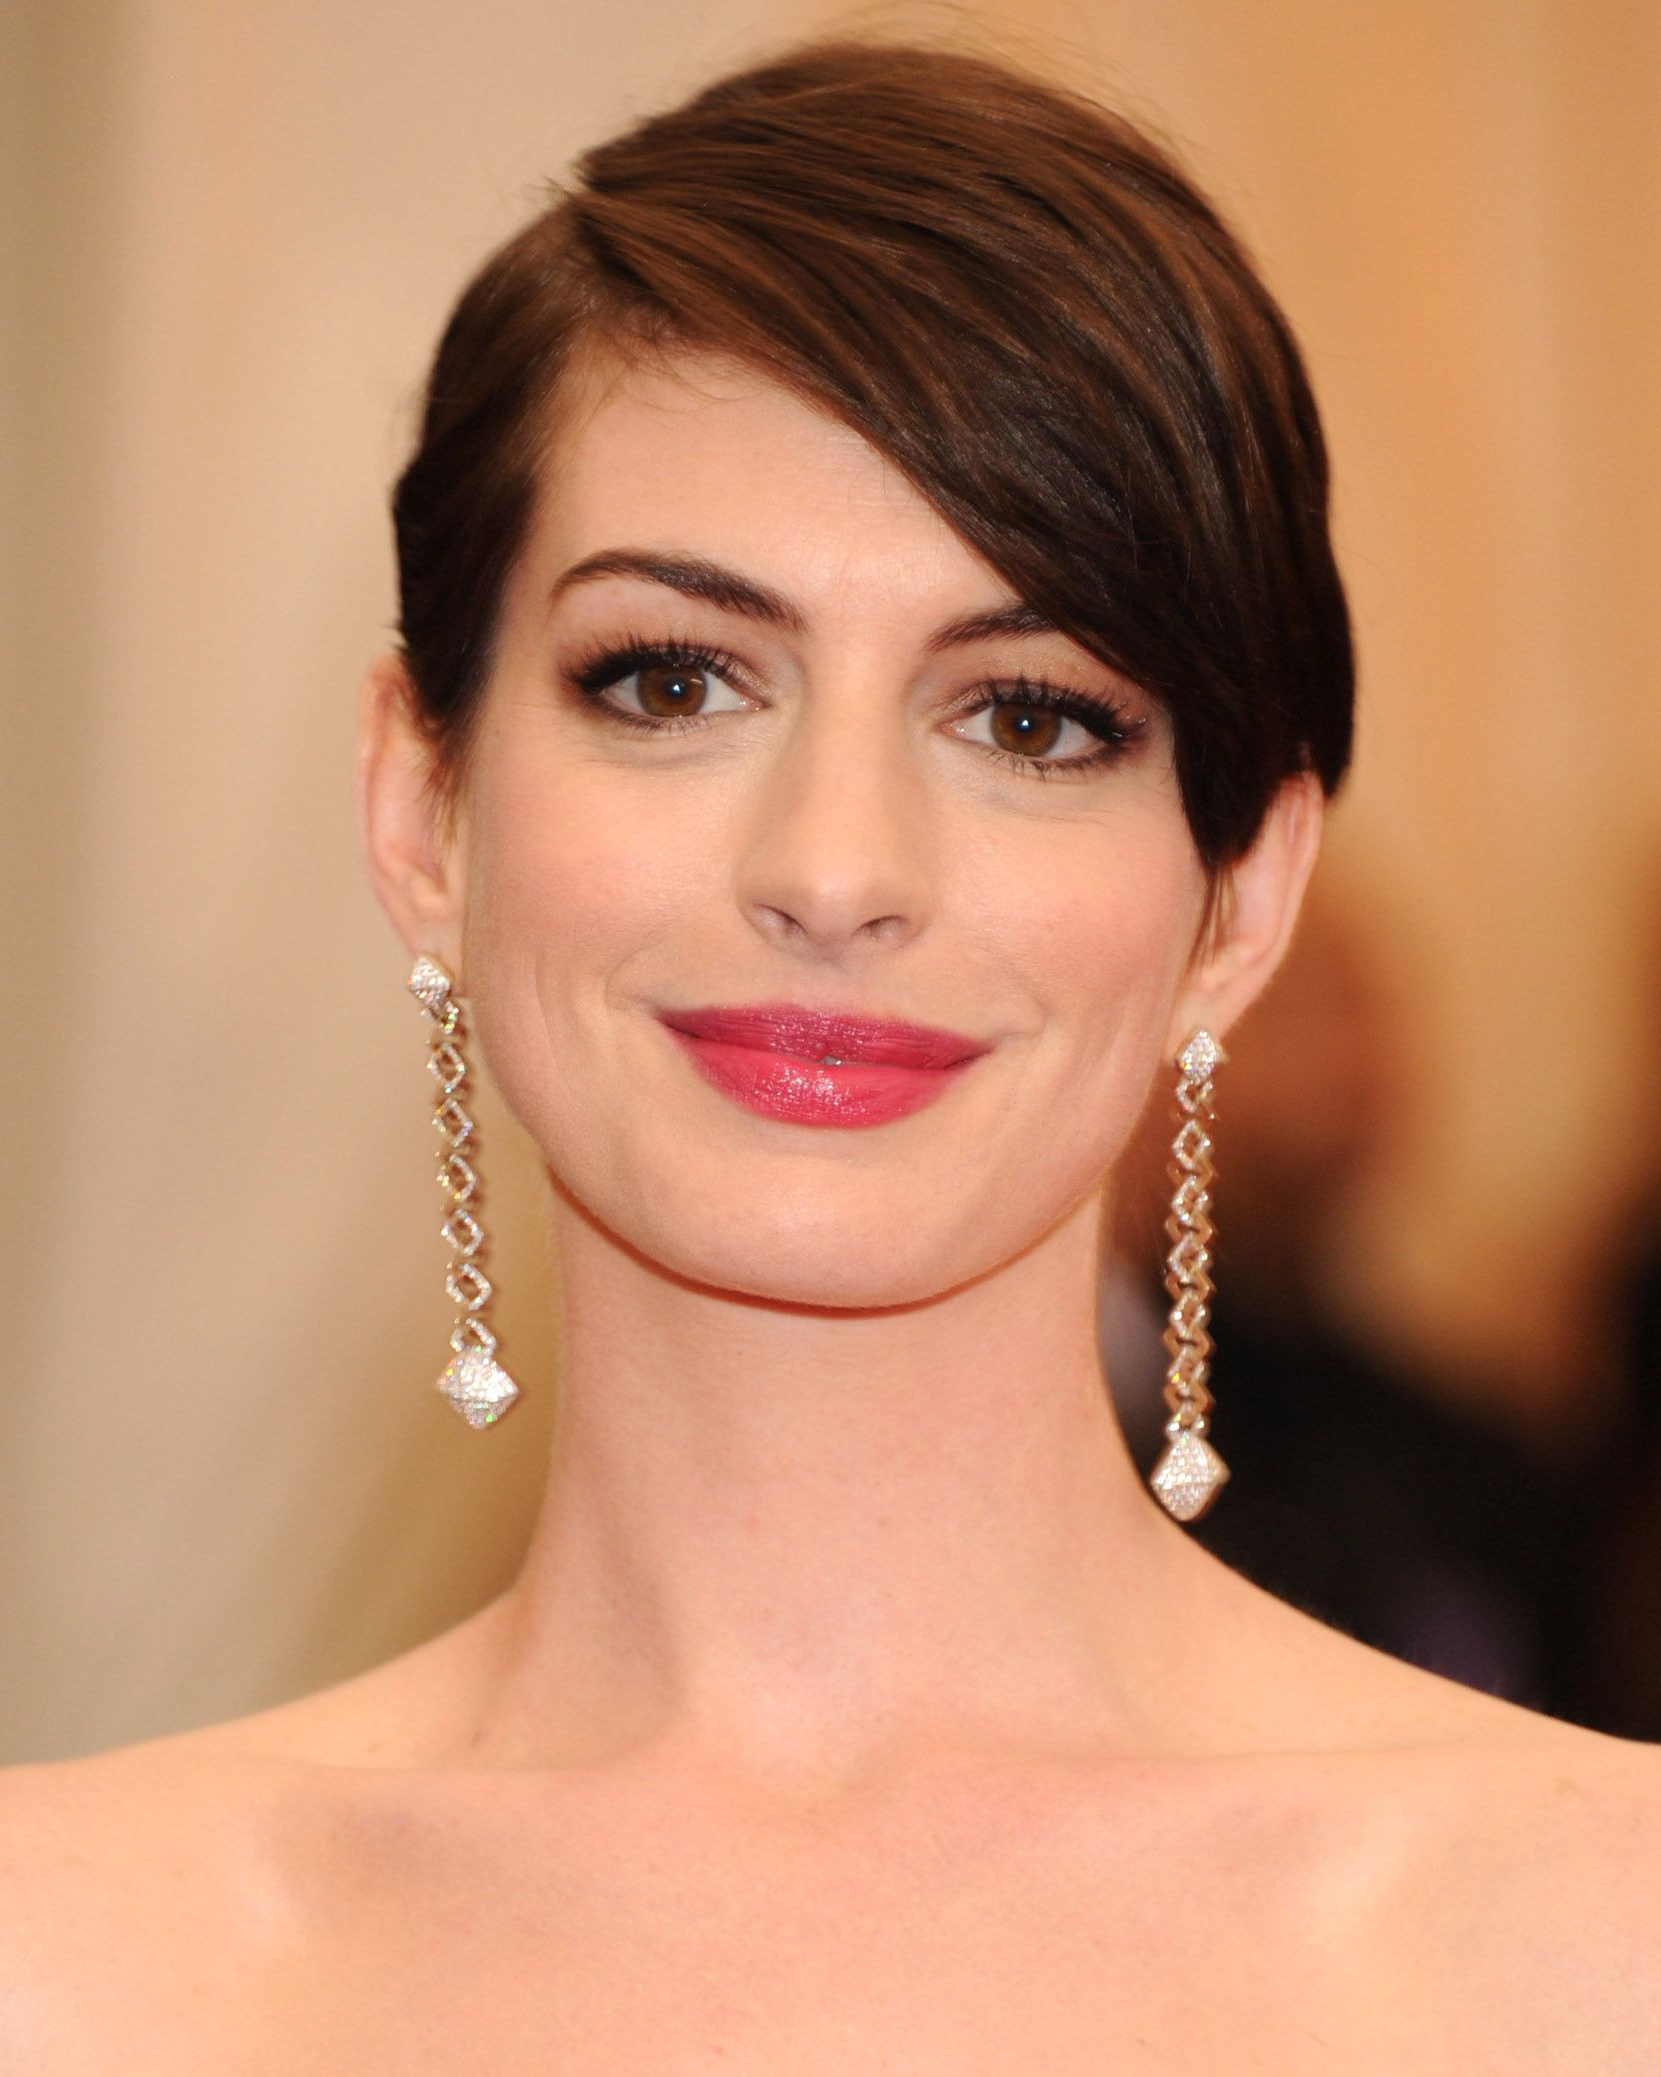 32 Best Short Hair Styles – Bobs, Pixie Cuts, And More Celebrity Within Anne Hathaway Short Haircuts (View 1 of 25)